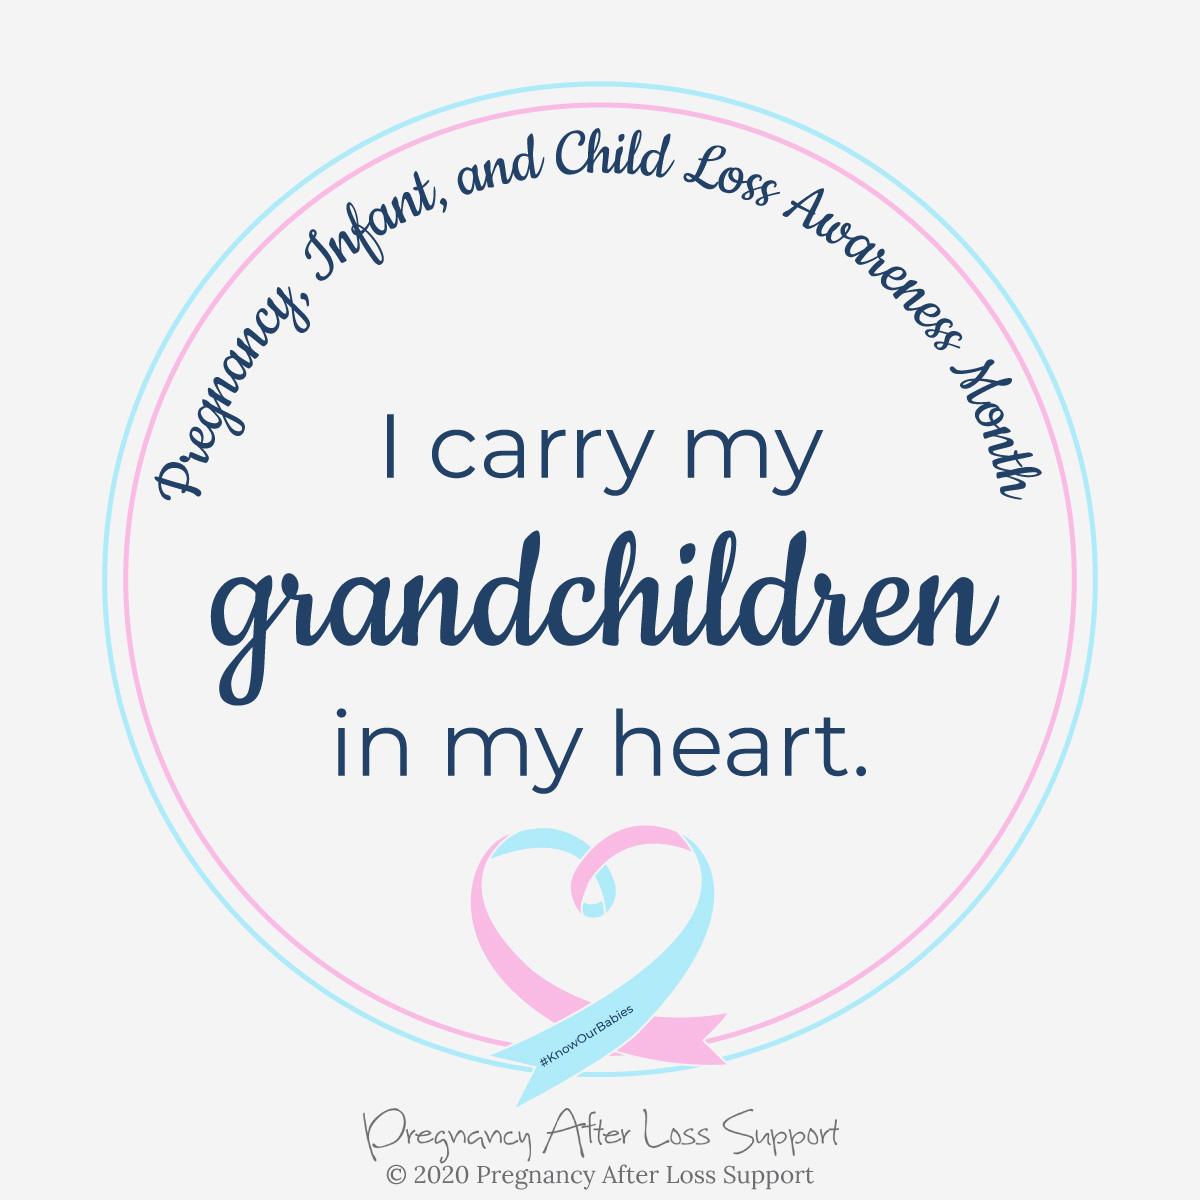 I carry my grandchildren in my heart - Pregnancy, Infant, and Child Loss Awareness Month